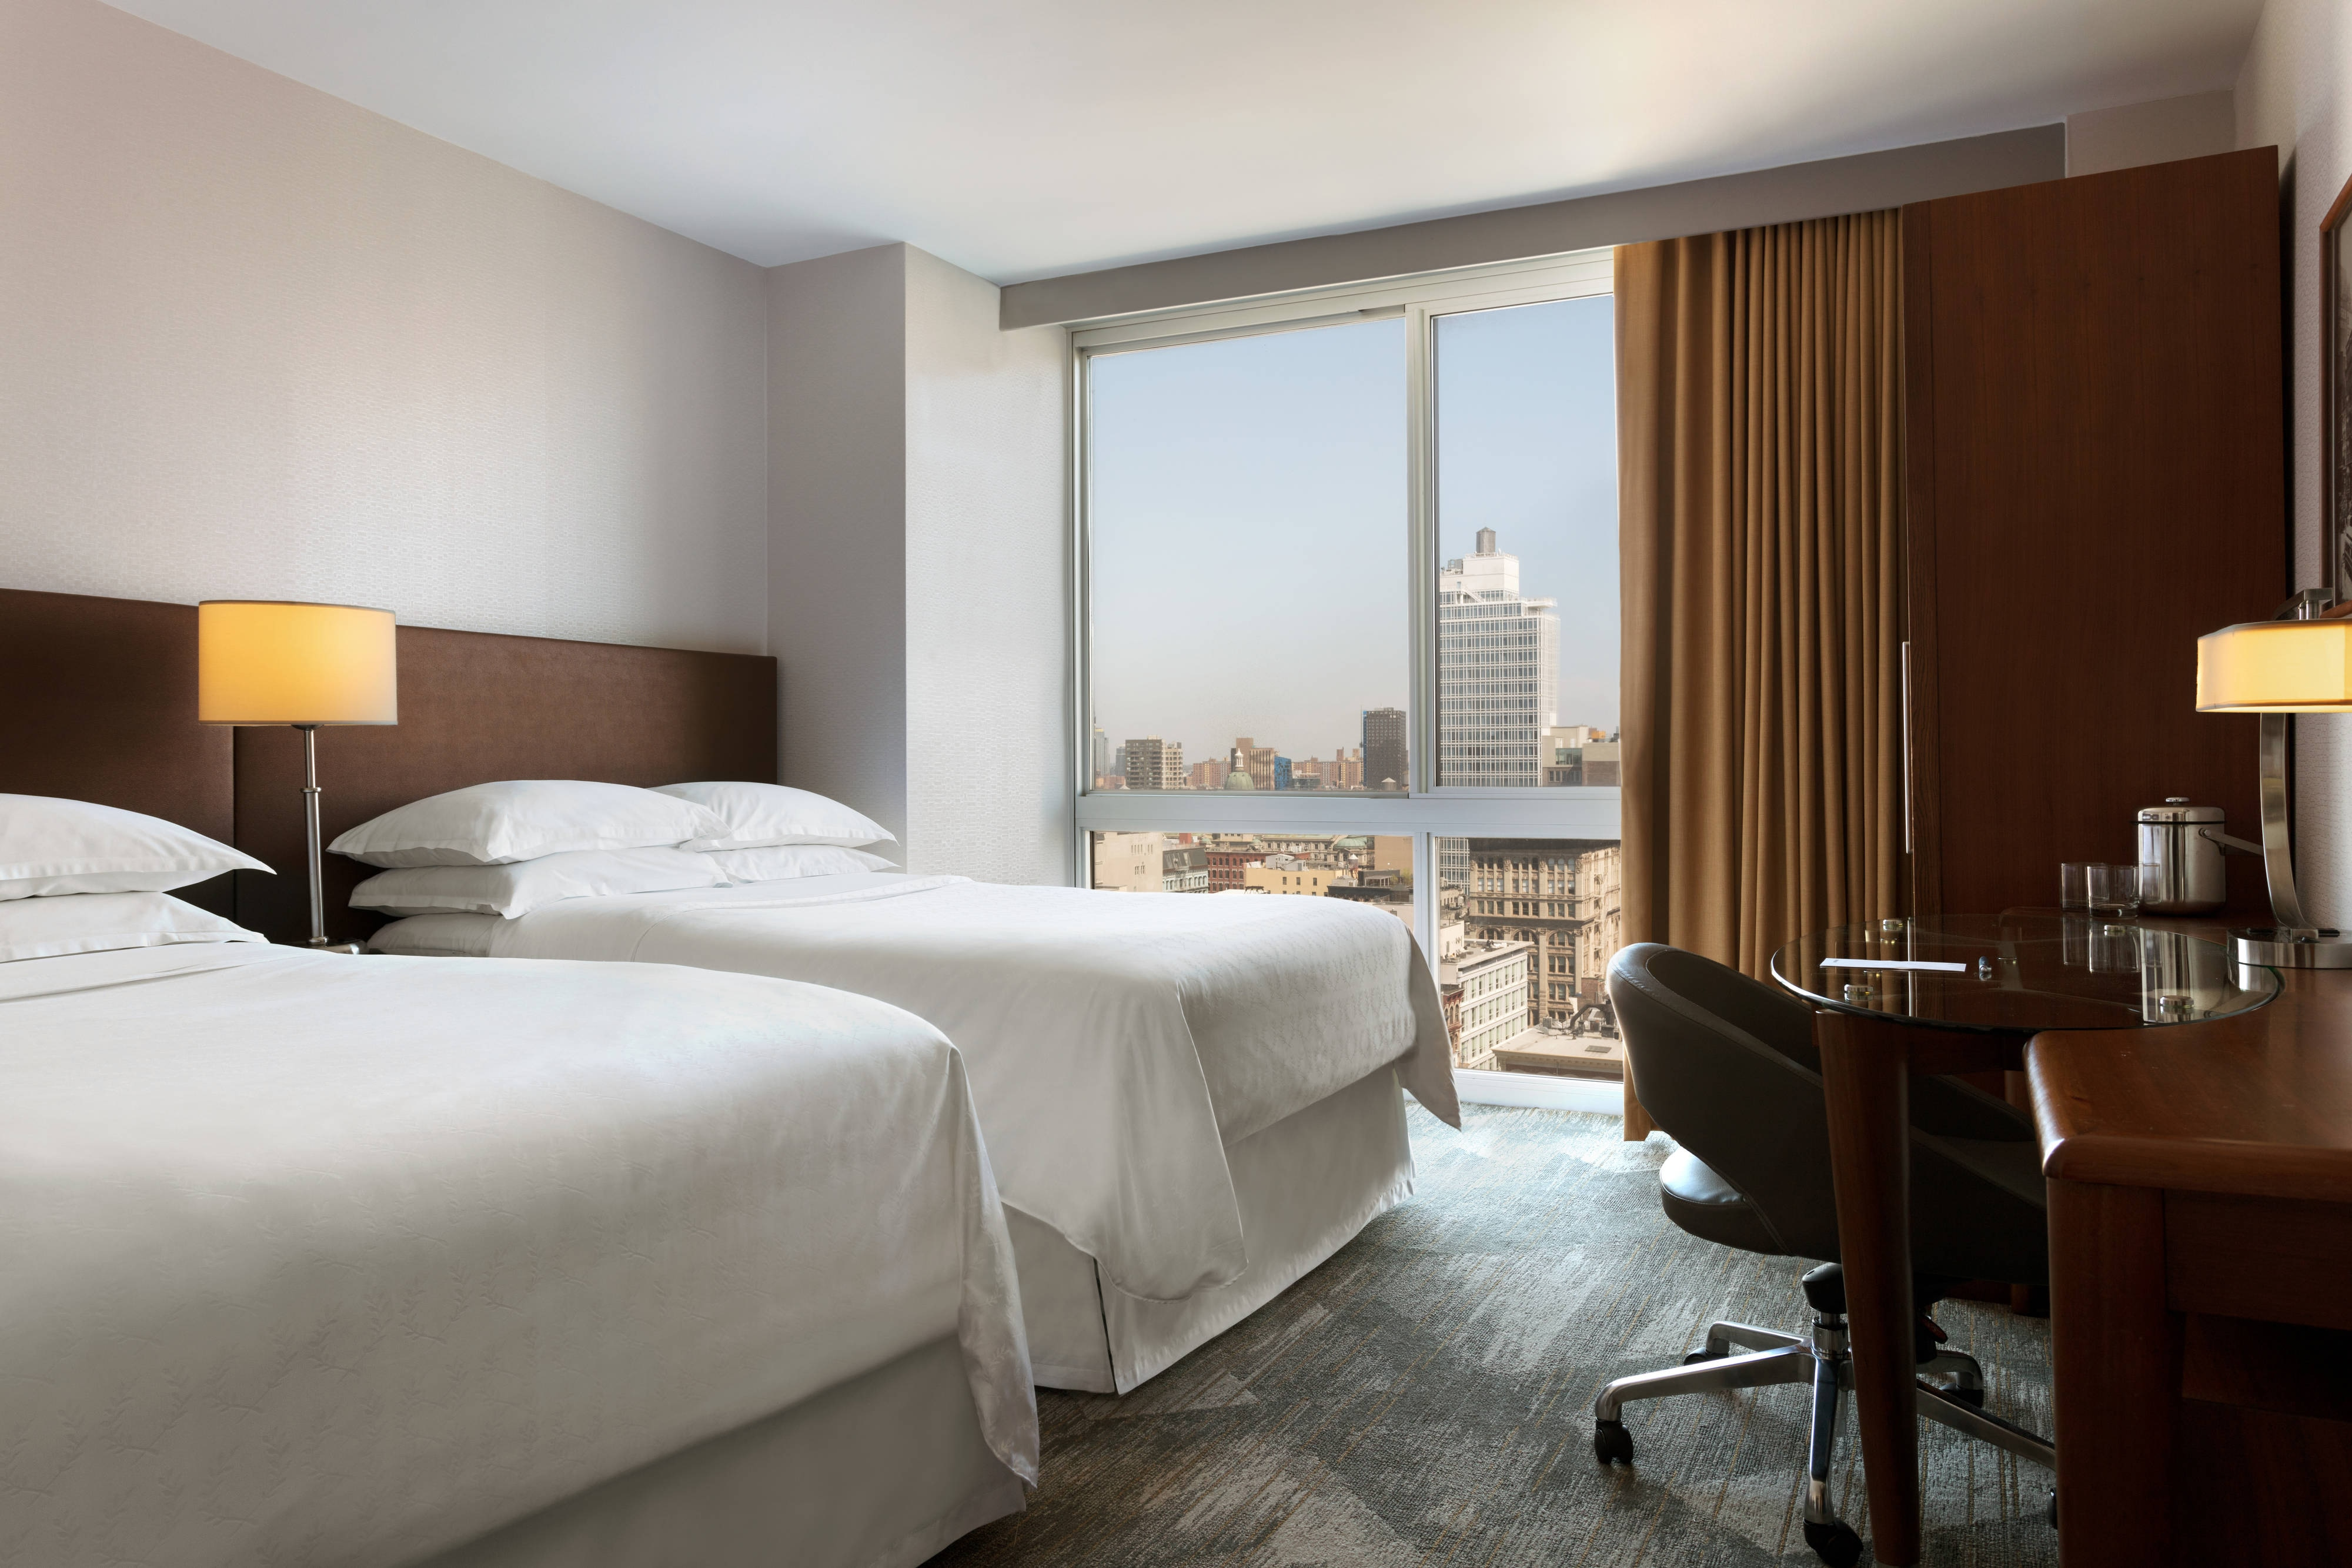 Albergo York Upscale Hotel In Nyc Sheraton Tribeca New York Hotel